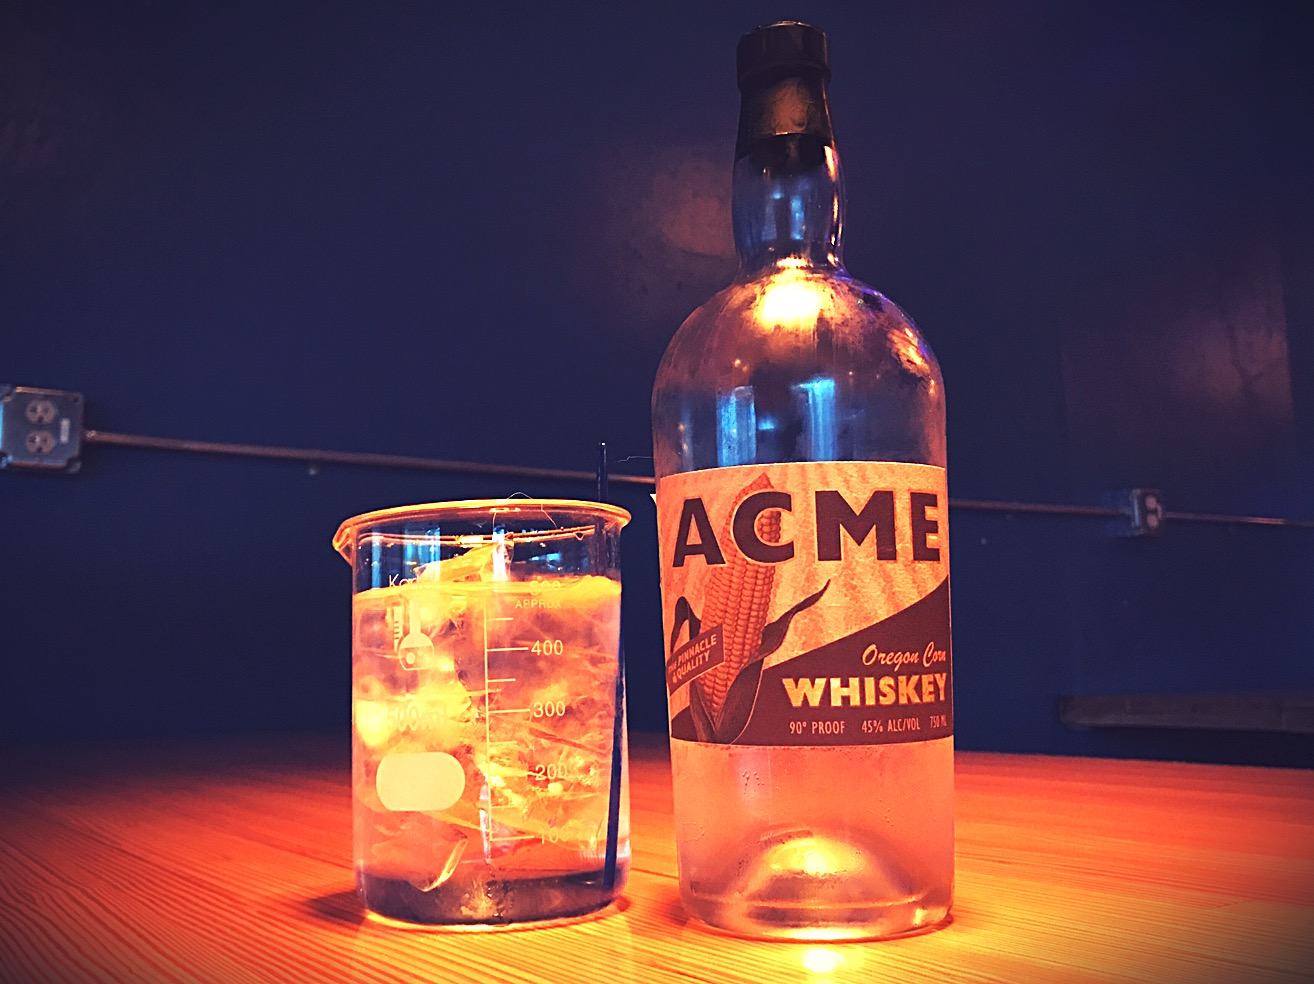 First Bottle of ACME WHiskey